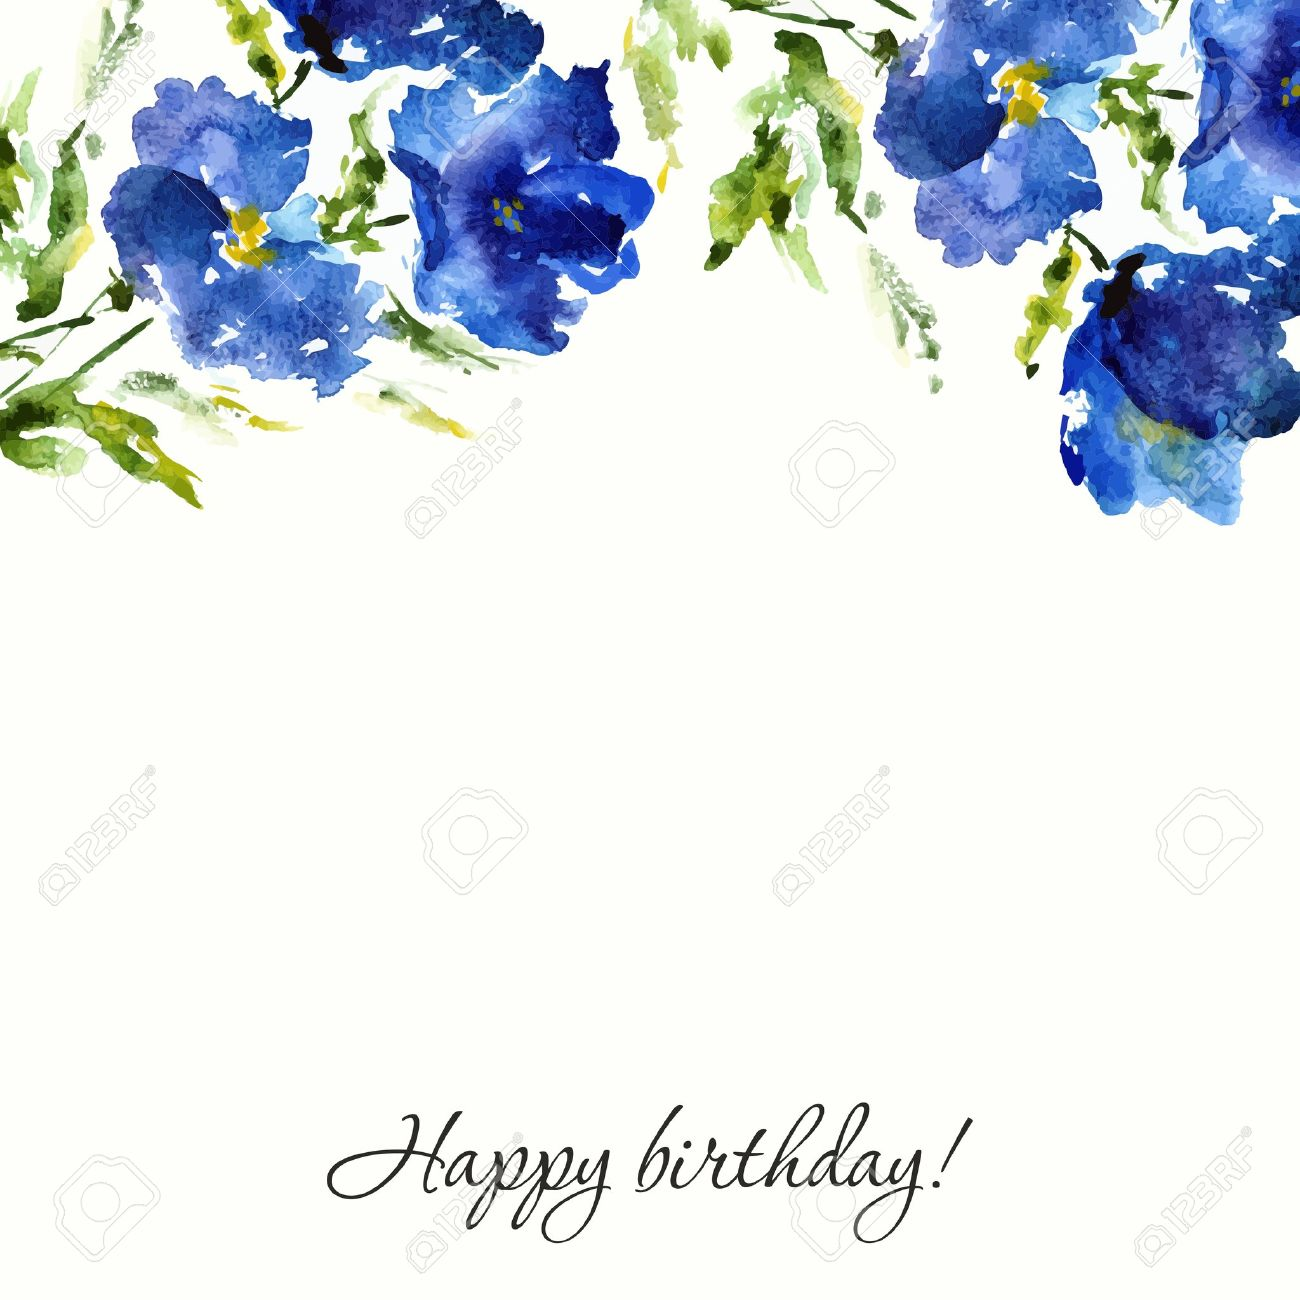 Blue Floral Background Watercolor Flowers Birthday Or Wedding Design Stock Vector